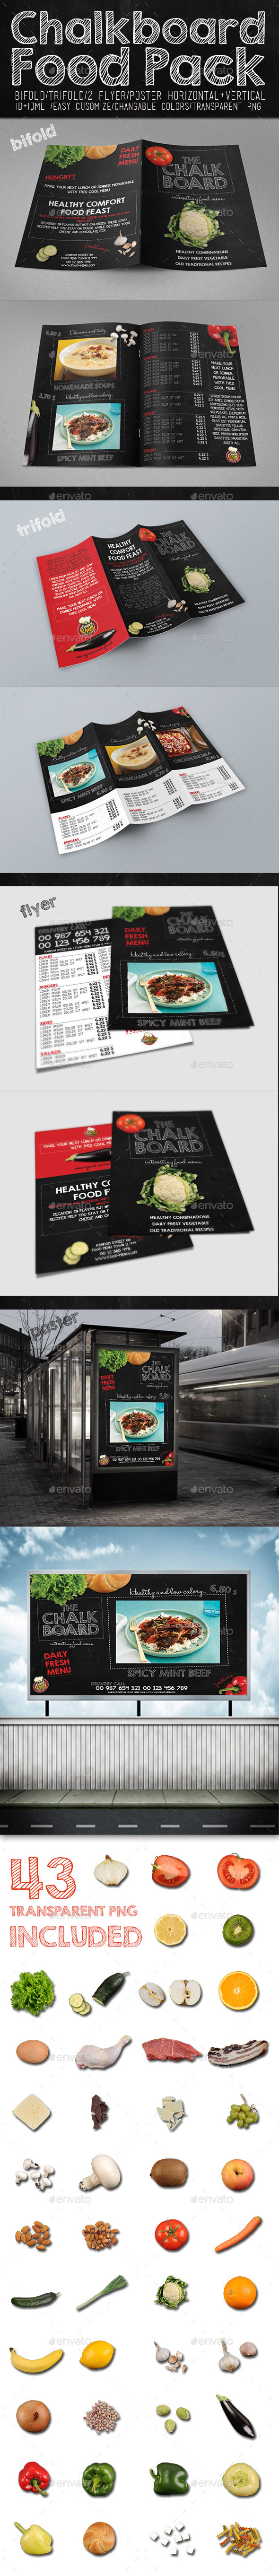 Chalkboard Food Package - Print Templates